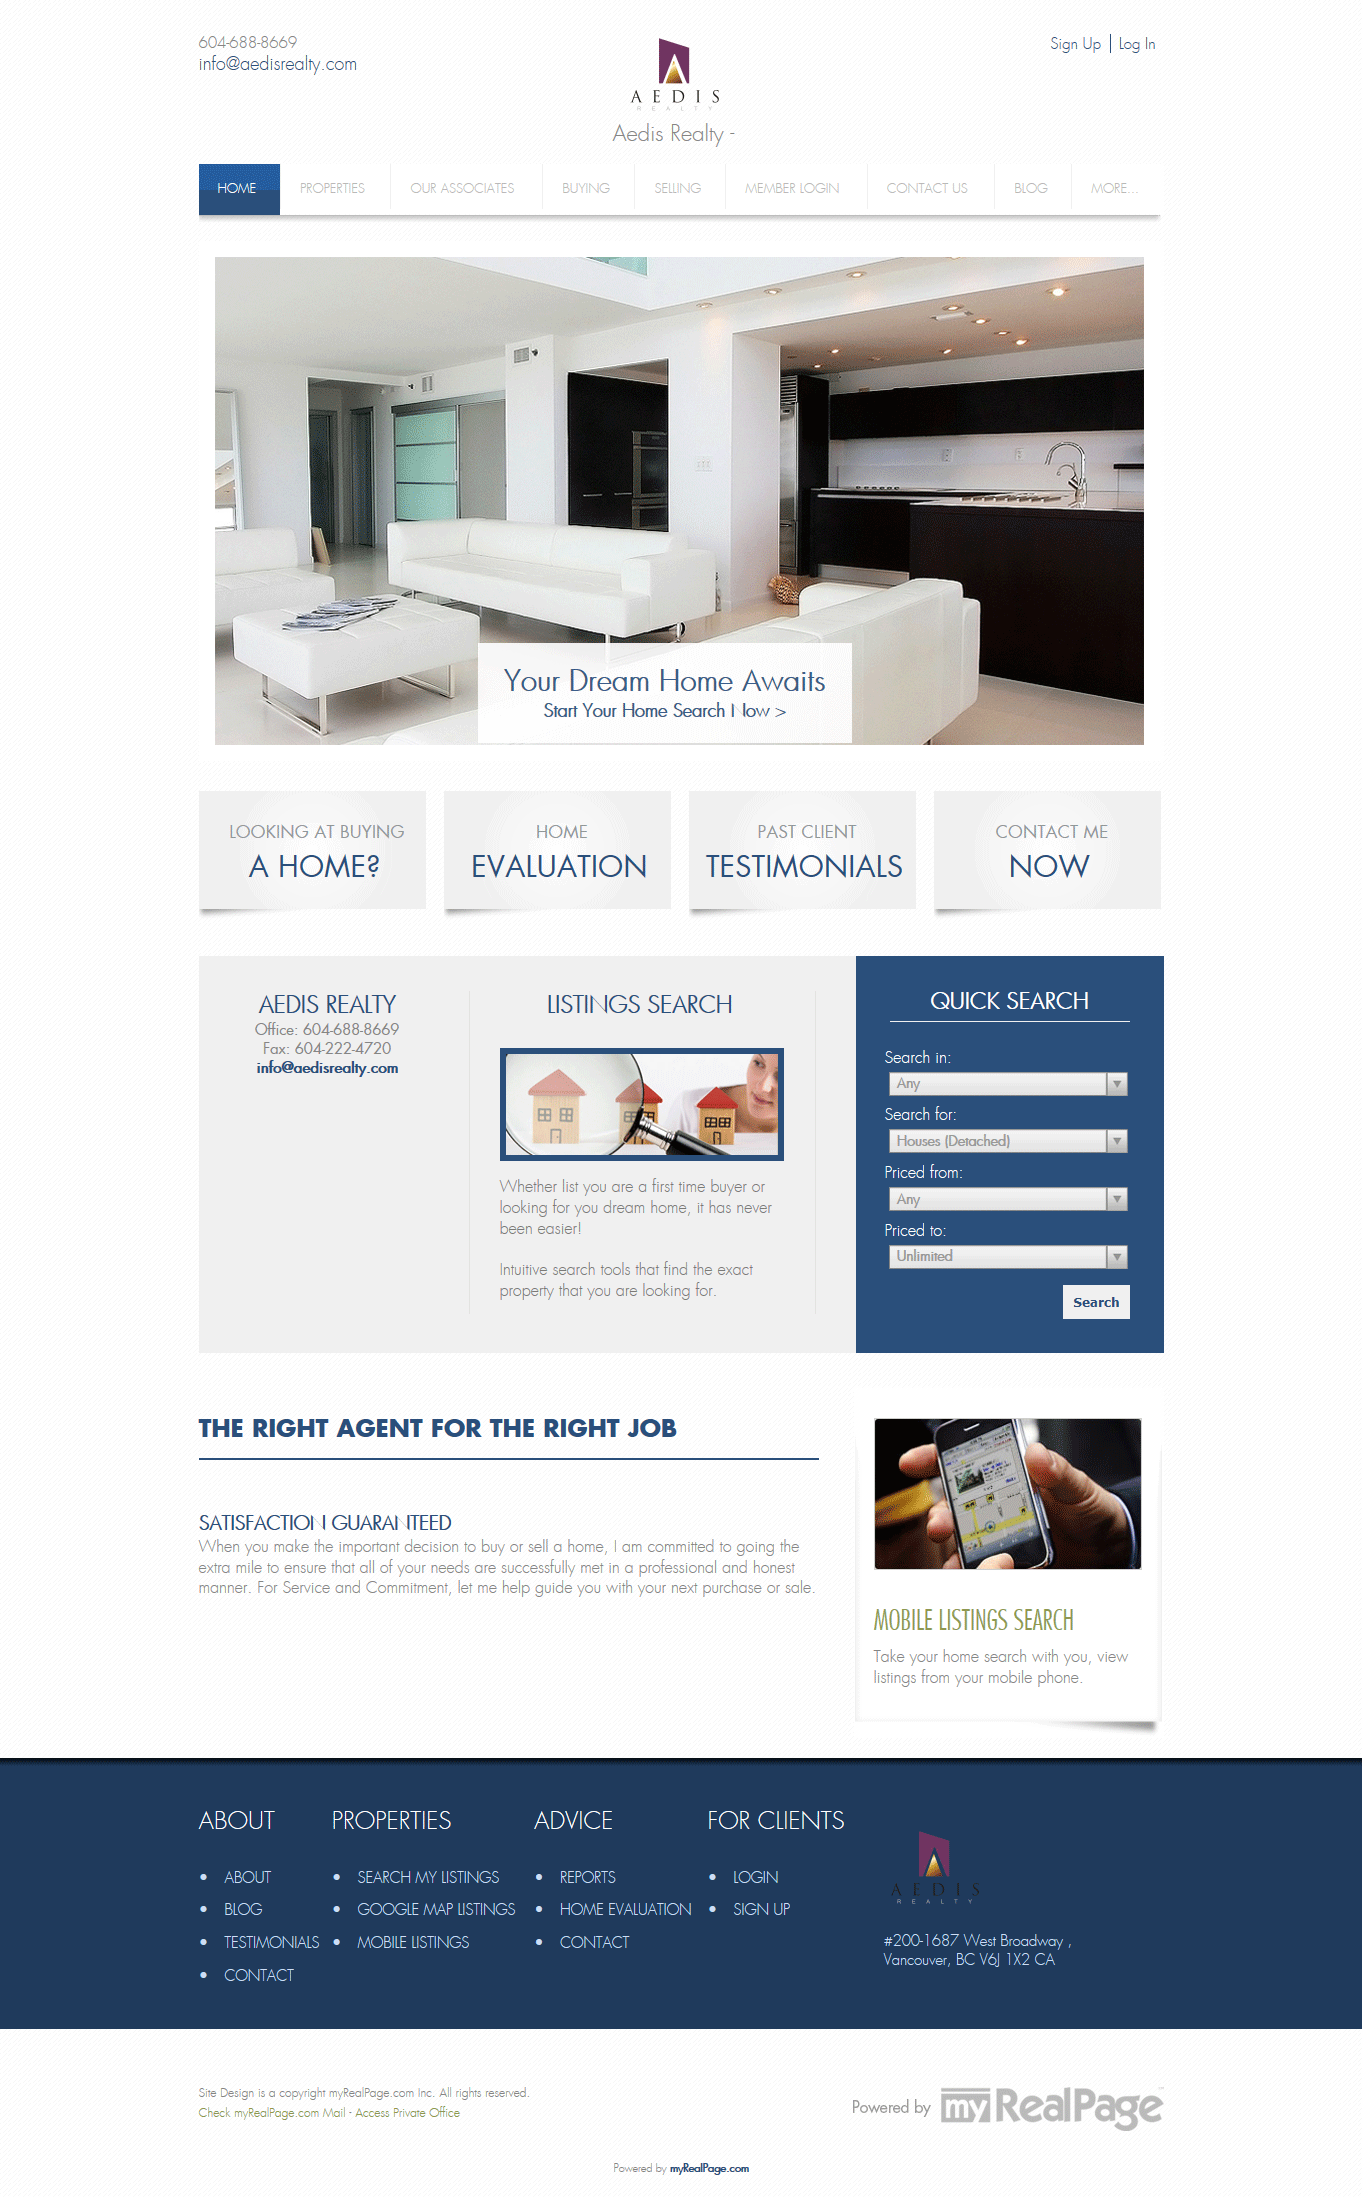 Aedis Realty Site screen shot